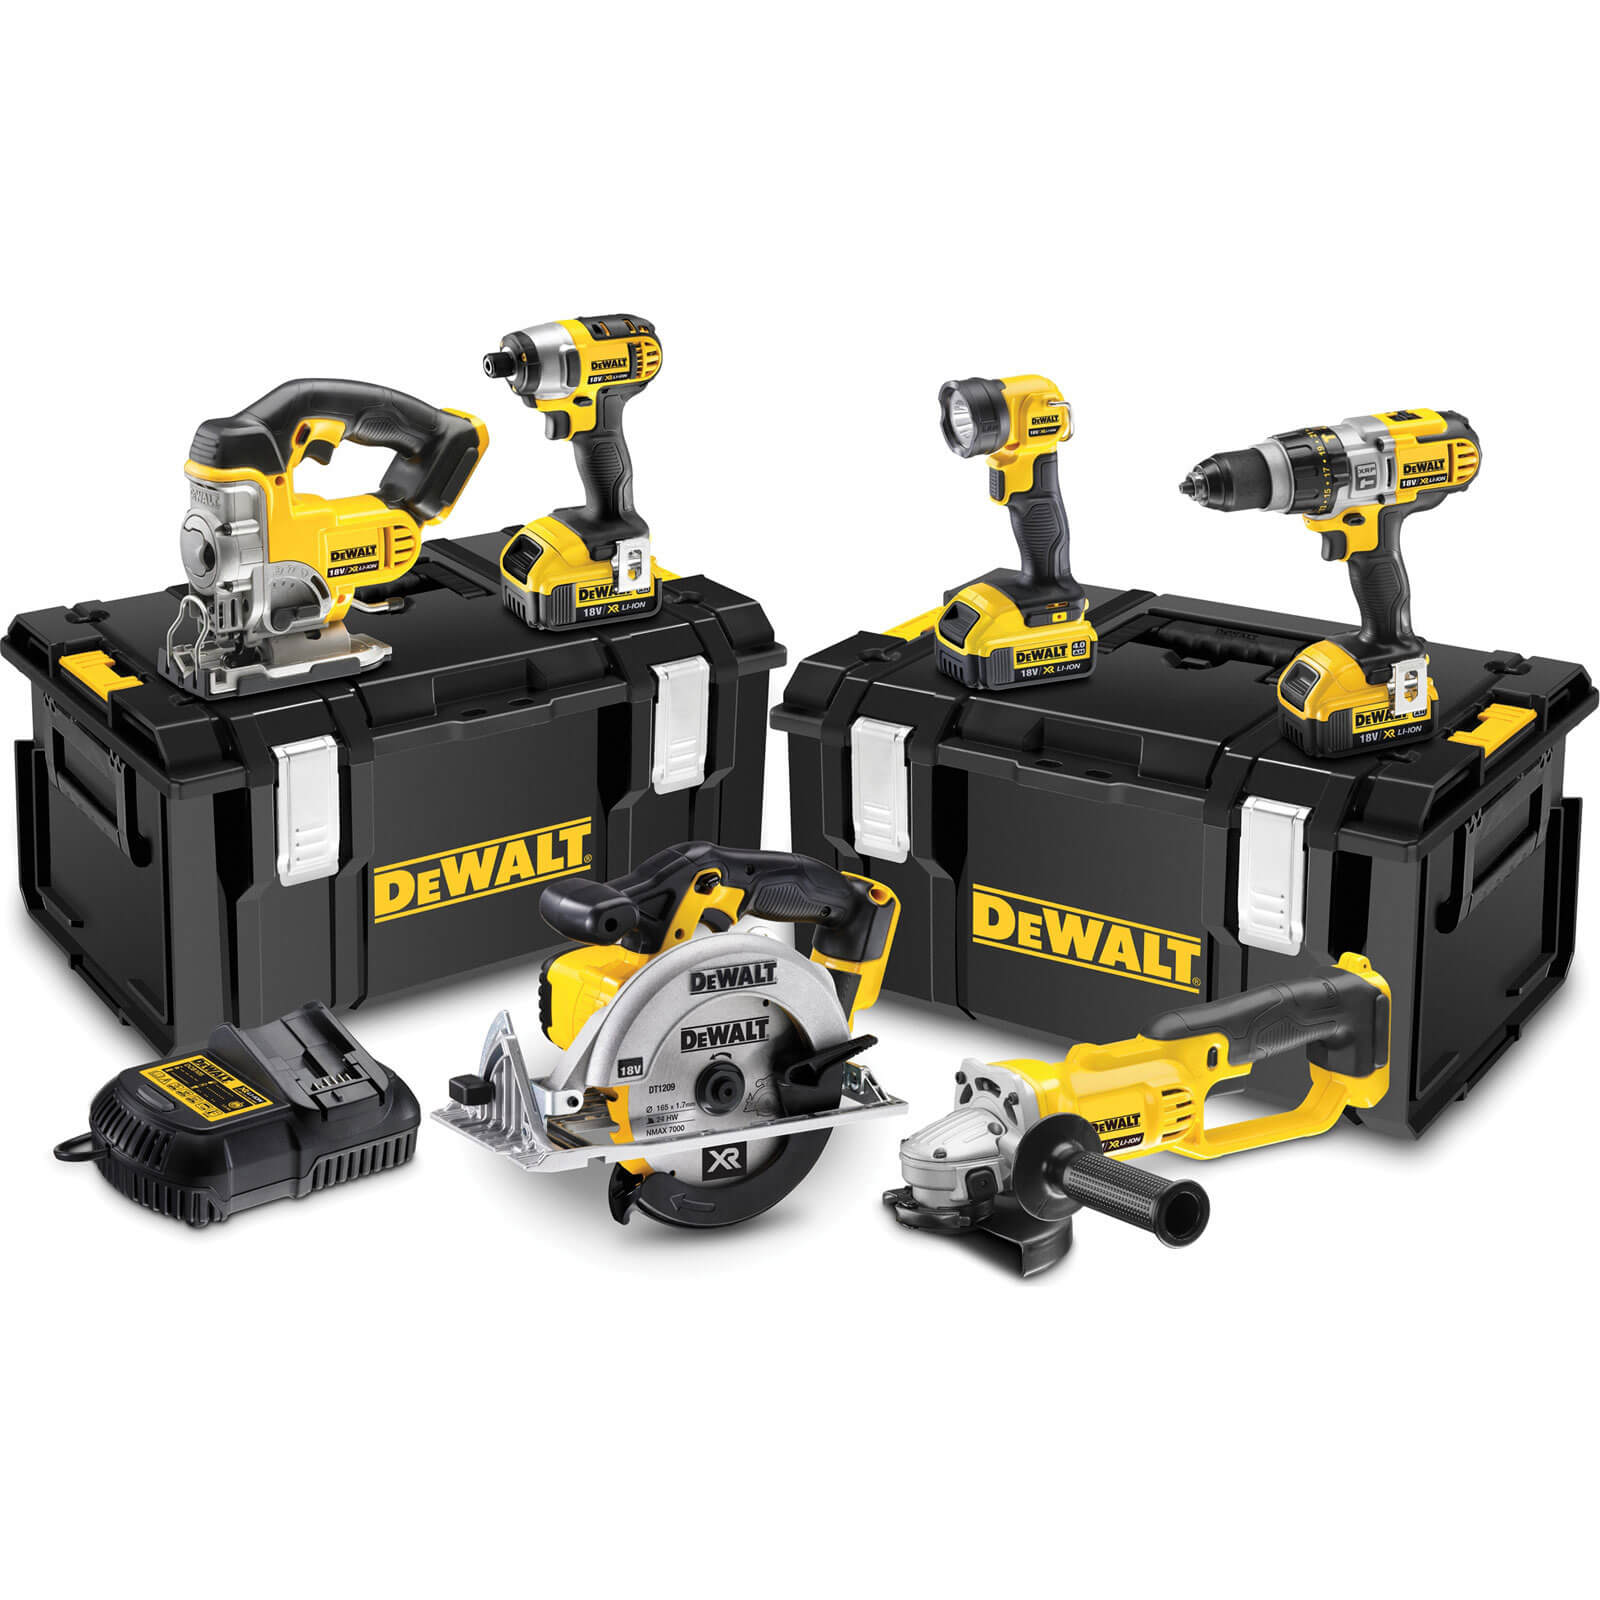 DeWalt DCK692 18v XR Cordless 6 Piece Power Tool Kit 3 x 4ah Liion Charger Case